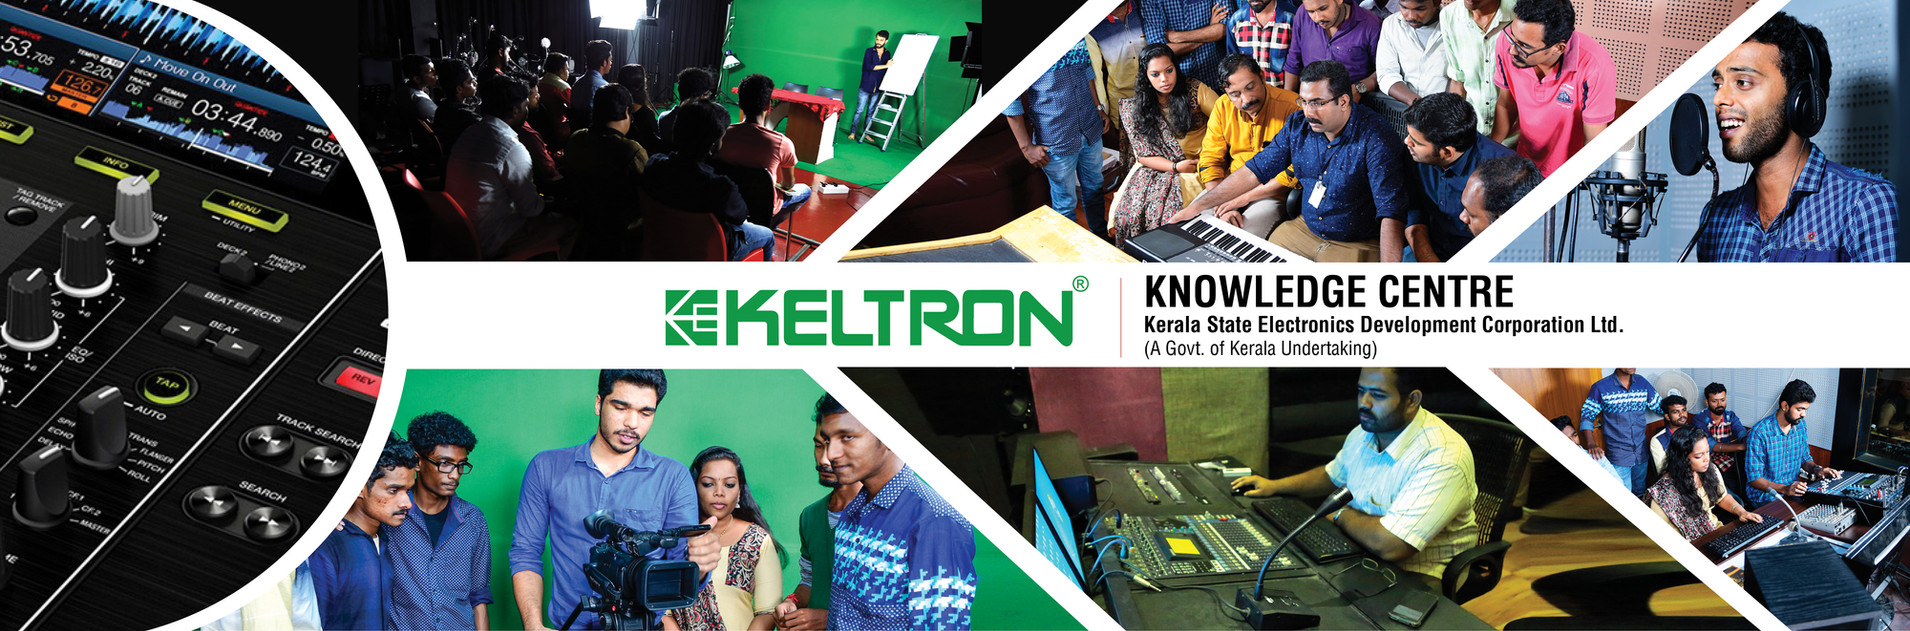 Keltron Knowledge Center, Chengannur